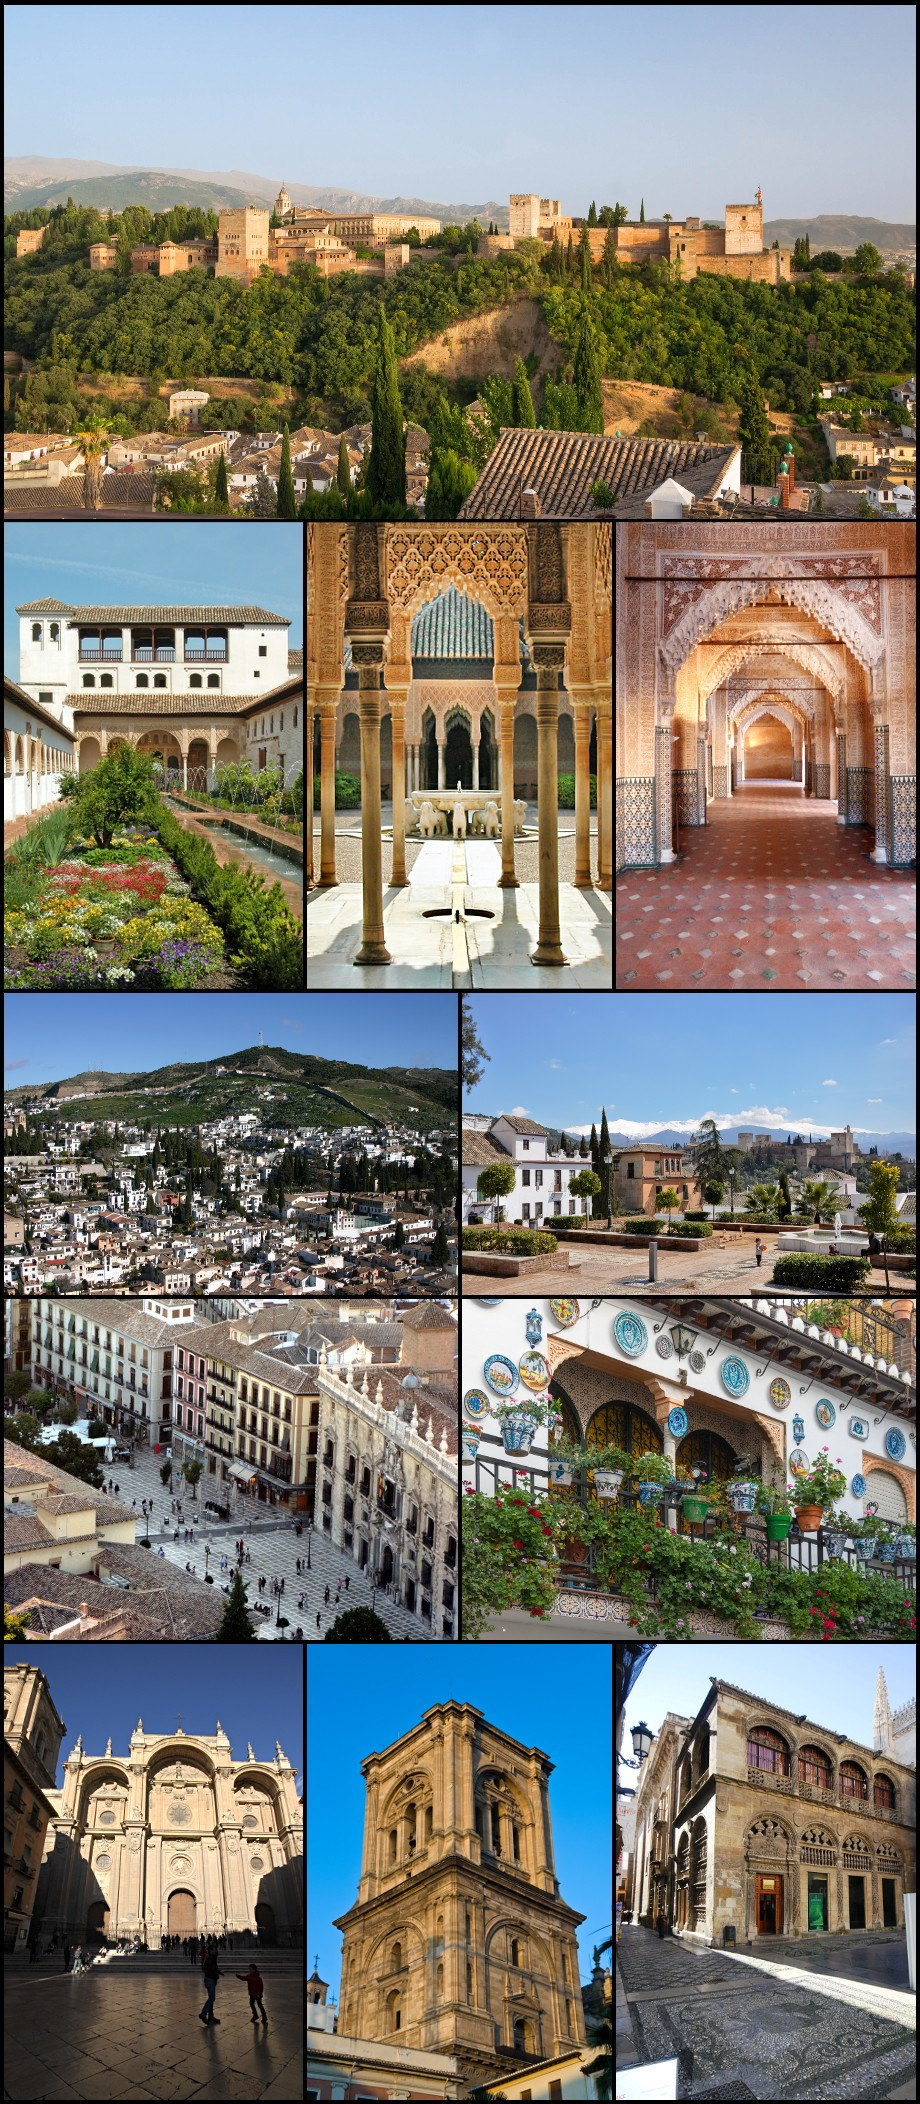 From top left: The Alhambra, Generalife, Patio de los Leones in Alhambra, Royal Hall in Alhambra, Albayzín and Sacromonte, Huerto del Carlos, in Albayzín, Plaza Nueva, house in Albayzín, façade of the cathedral, bell tower of the cathedral, Royal Chapel